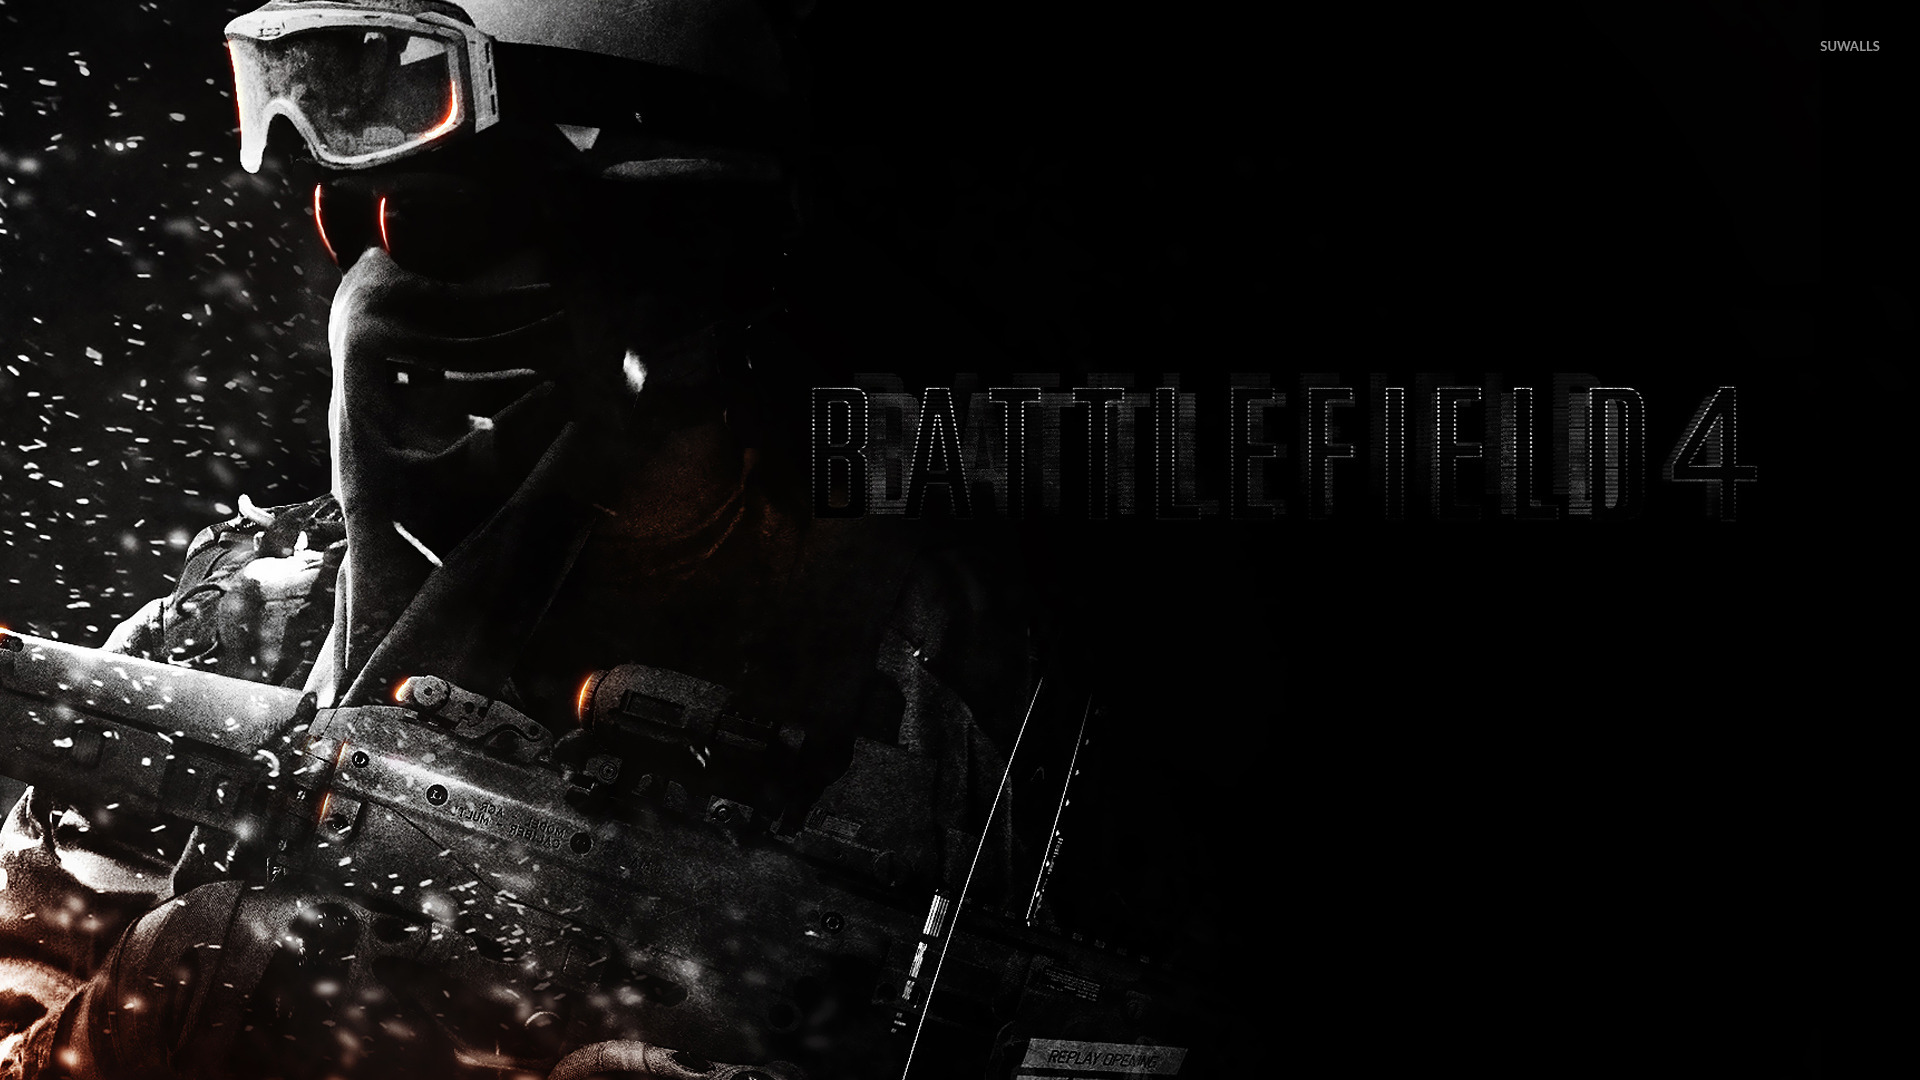 Battlefield 4 wallpaper   Game wallpapers   21377 1366x768